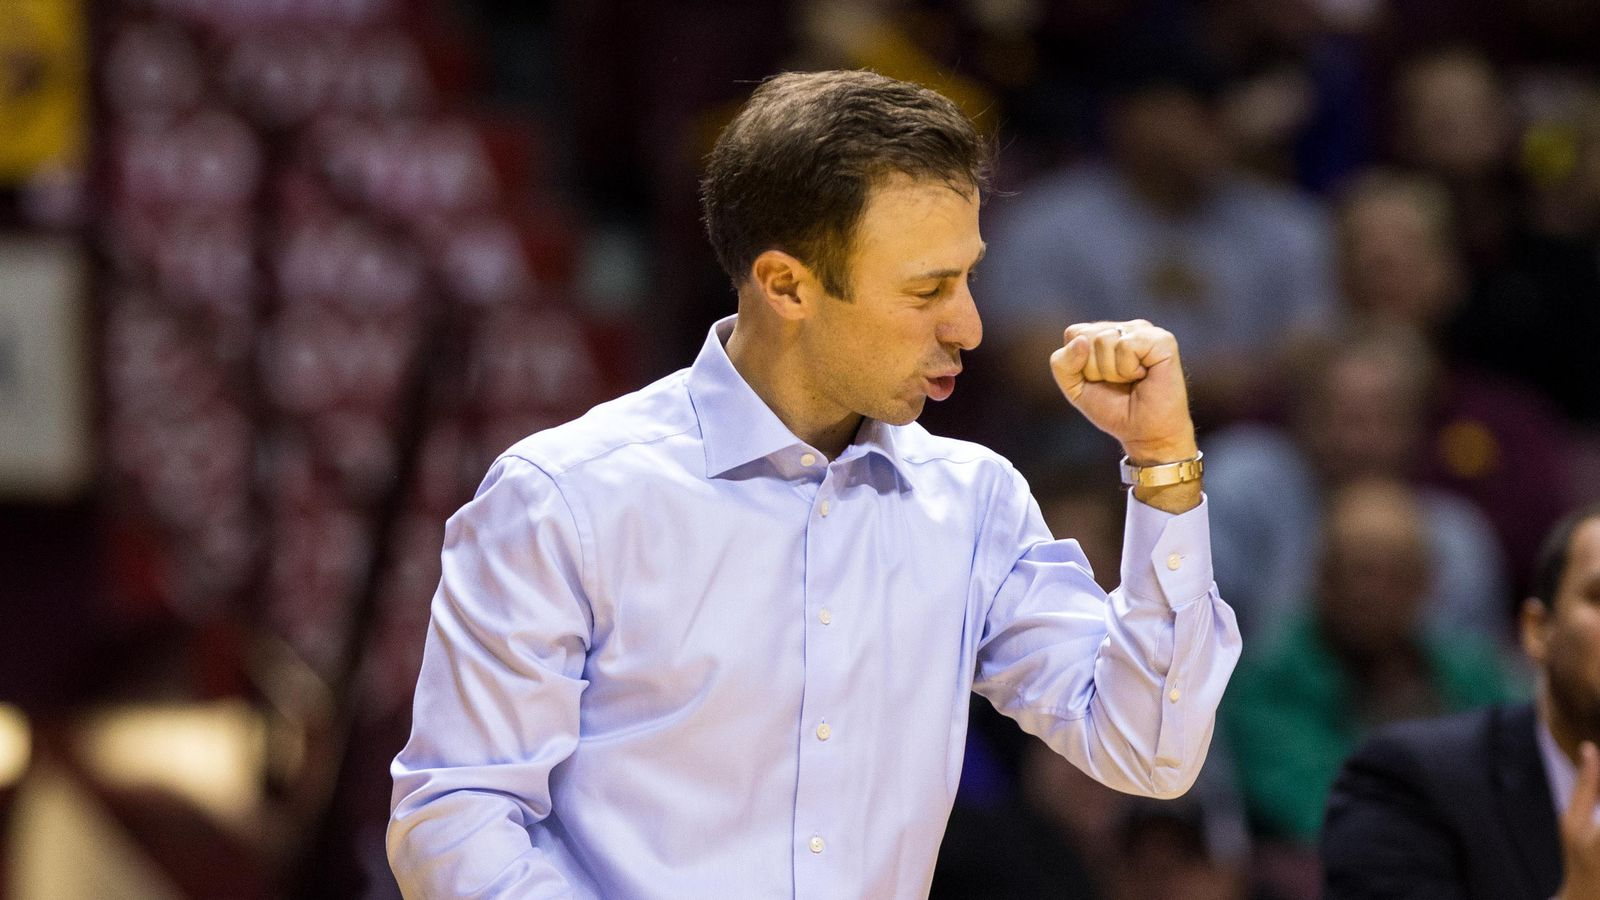 2017 Big Ten Coach of the Year Richard Pitino honored for